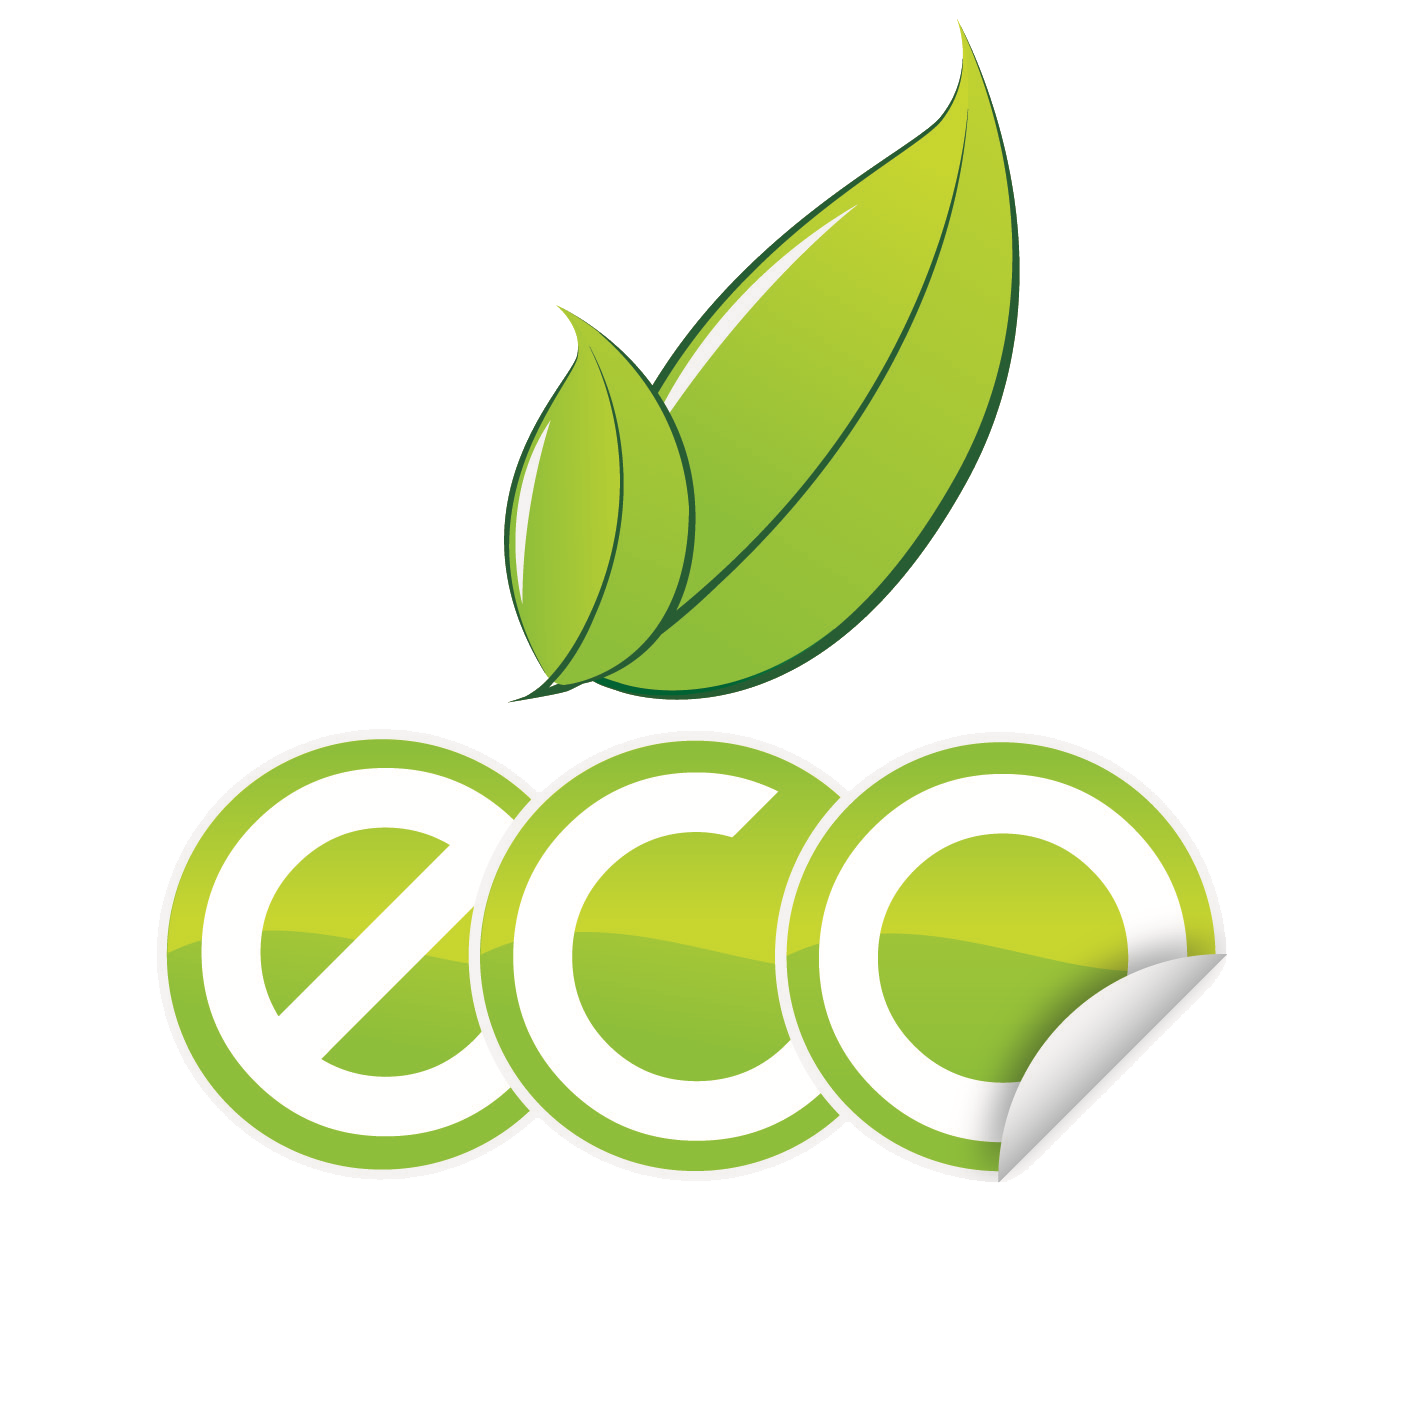 ECO Logo Wallpaper